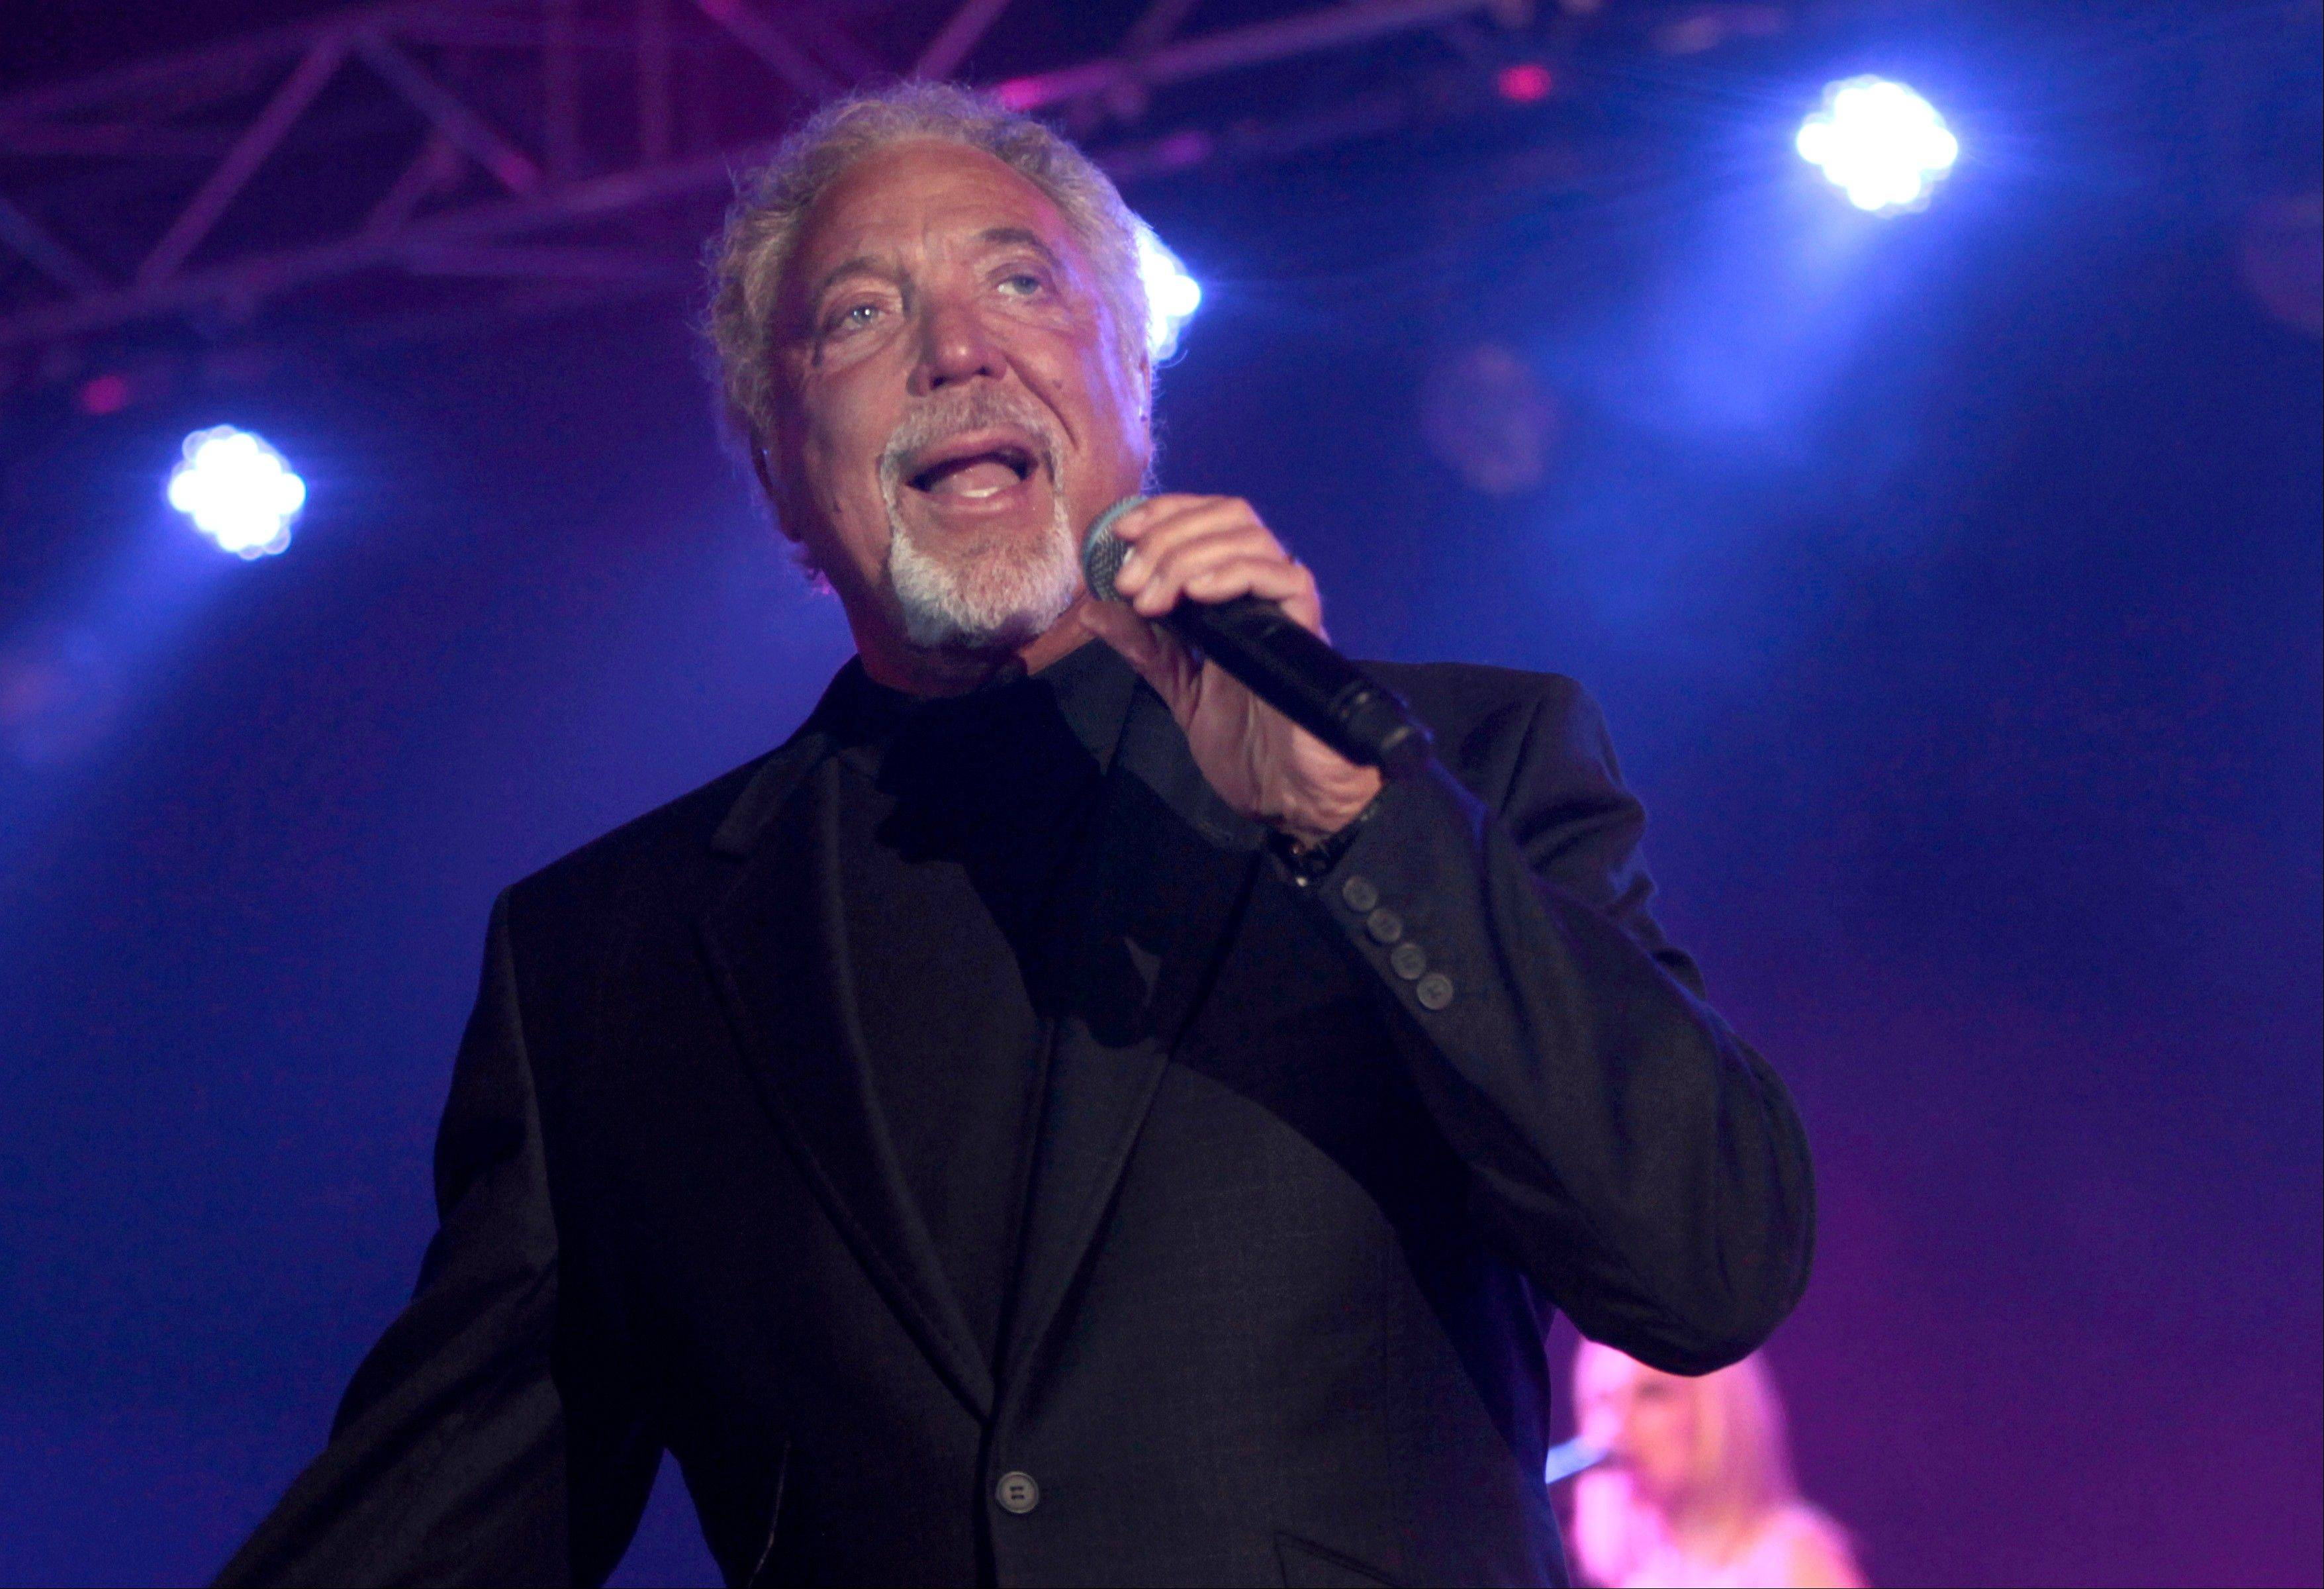 Singer Tom Jones performs during a concert in Beirut, Lebanon. Jones has apologized to fans after pulling out of an Olympic celebration concert in London after contracting bronchitis. The 72-year-old Welsh crooner had been due to entertain tens of thousands of people at the outdoor concert in Hyde Park on Saturday, July 28, 2012. He was replaced by British singer Will Young.